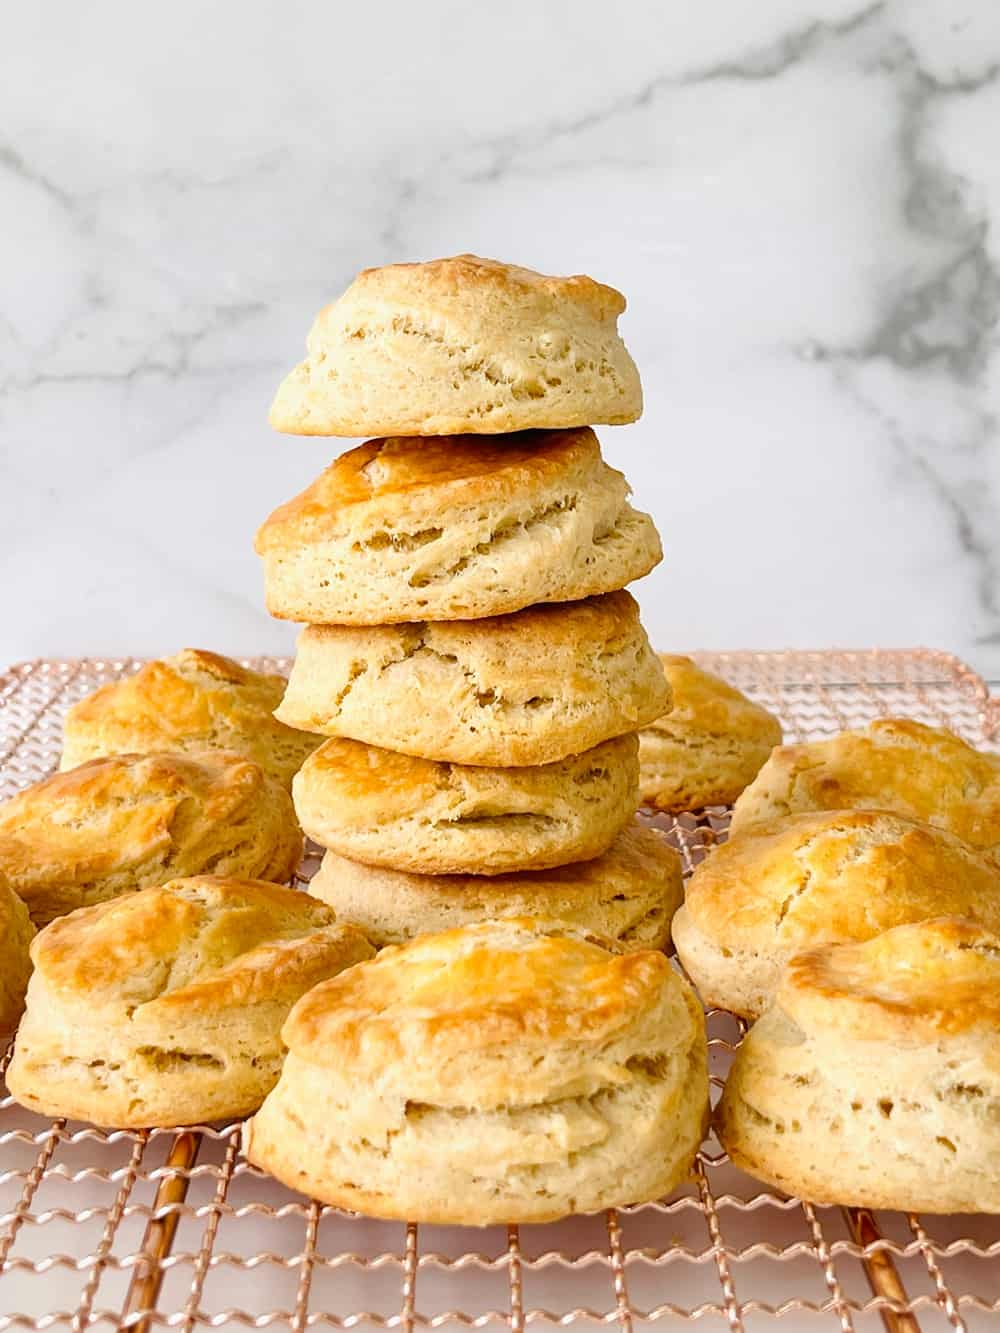 We Tried Joanna Gaines Biscuit Recipe And There's a Reason Why They Are Famous